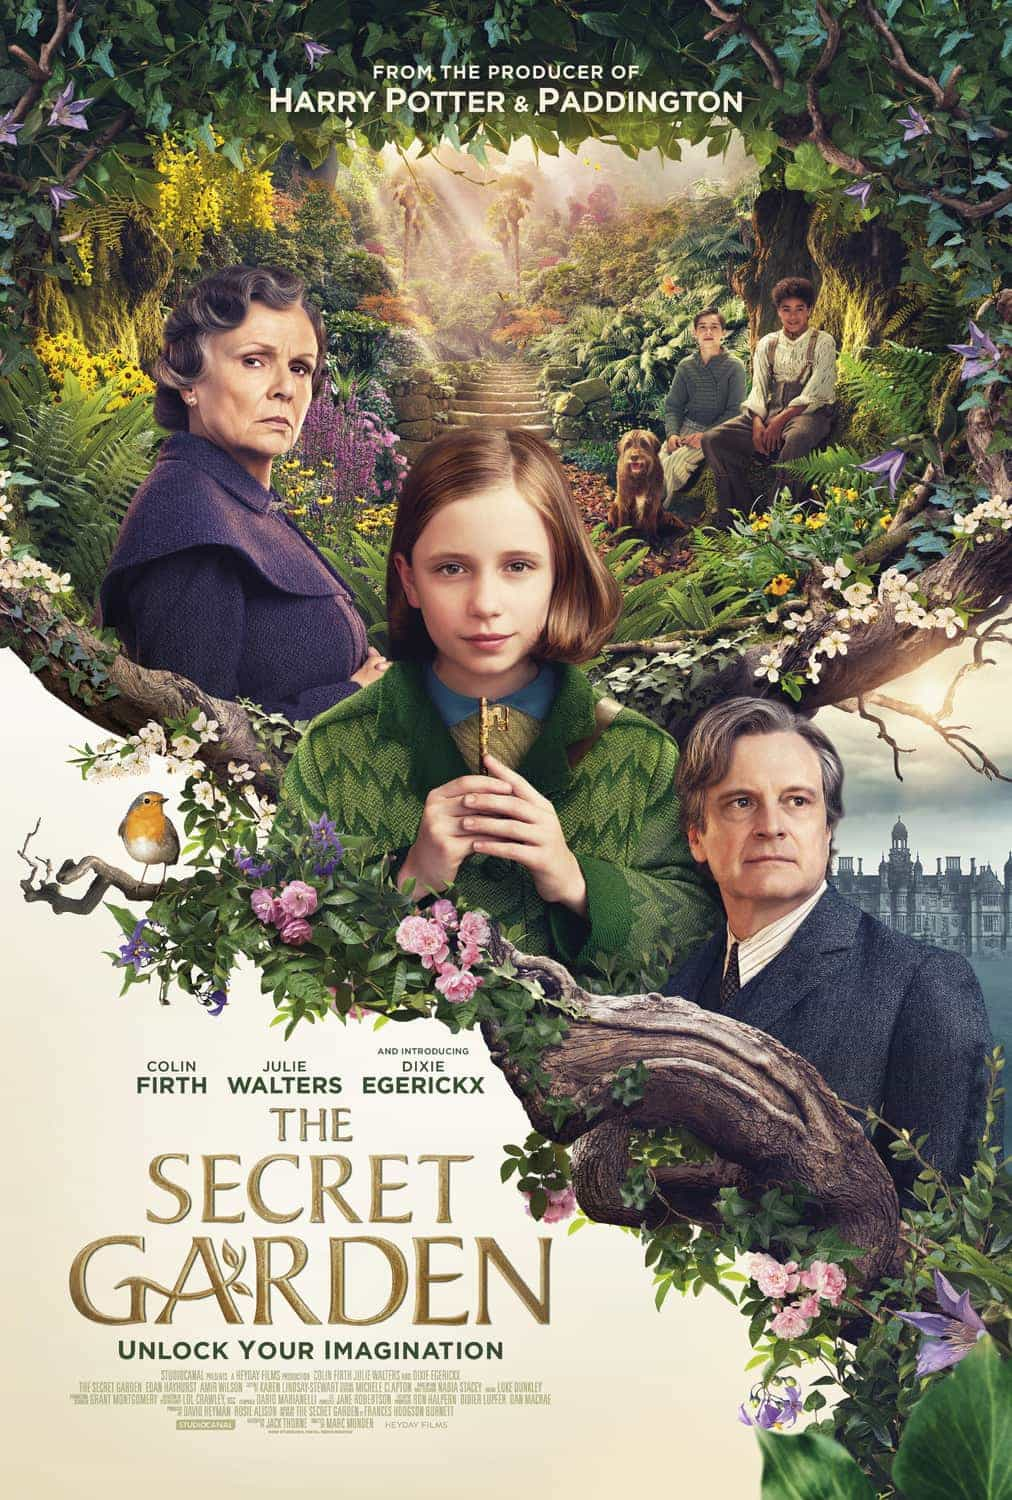 UK Box Office Figures 13th - 15th November 2020:  The Secret Garden jumps to the top of the UK box office on its 4th week of release